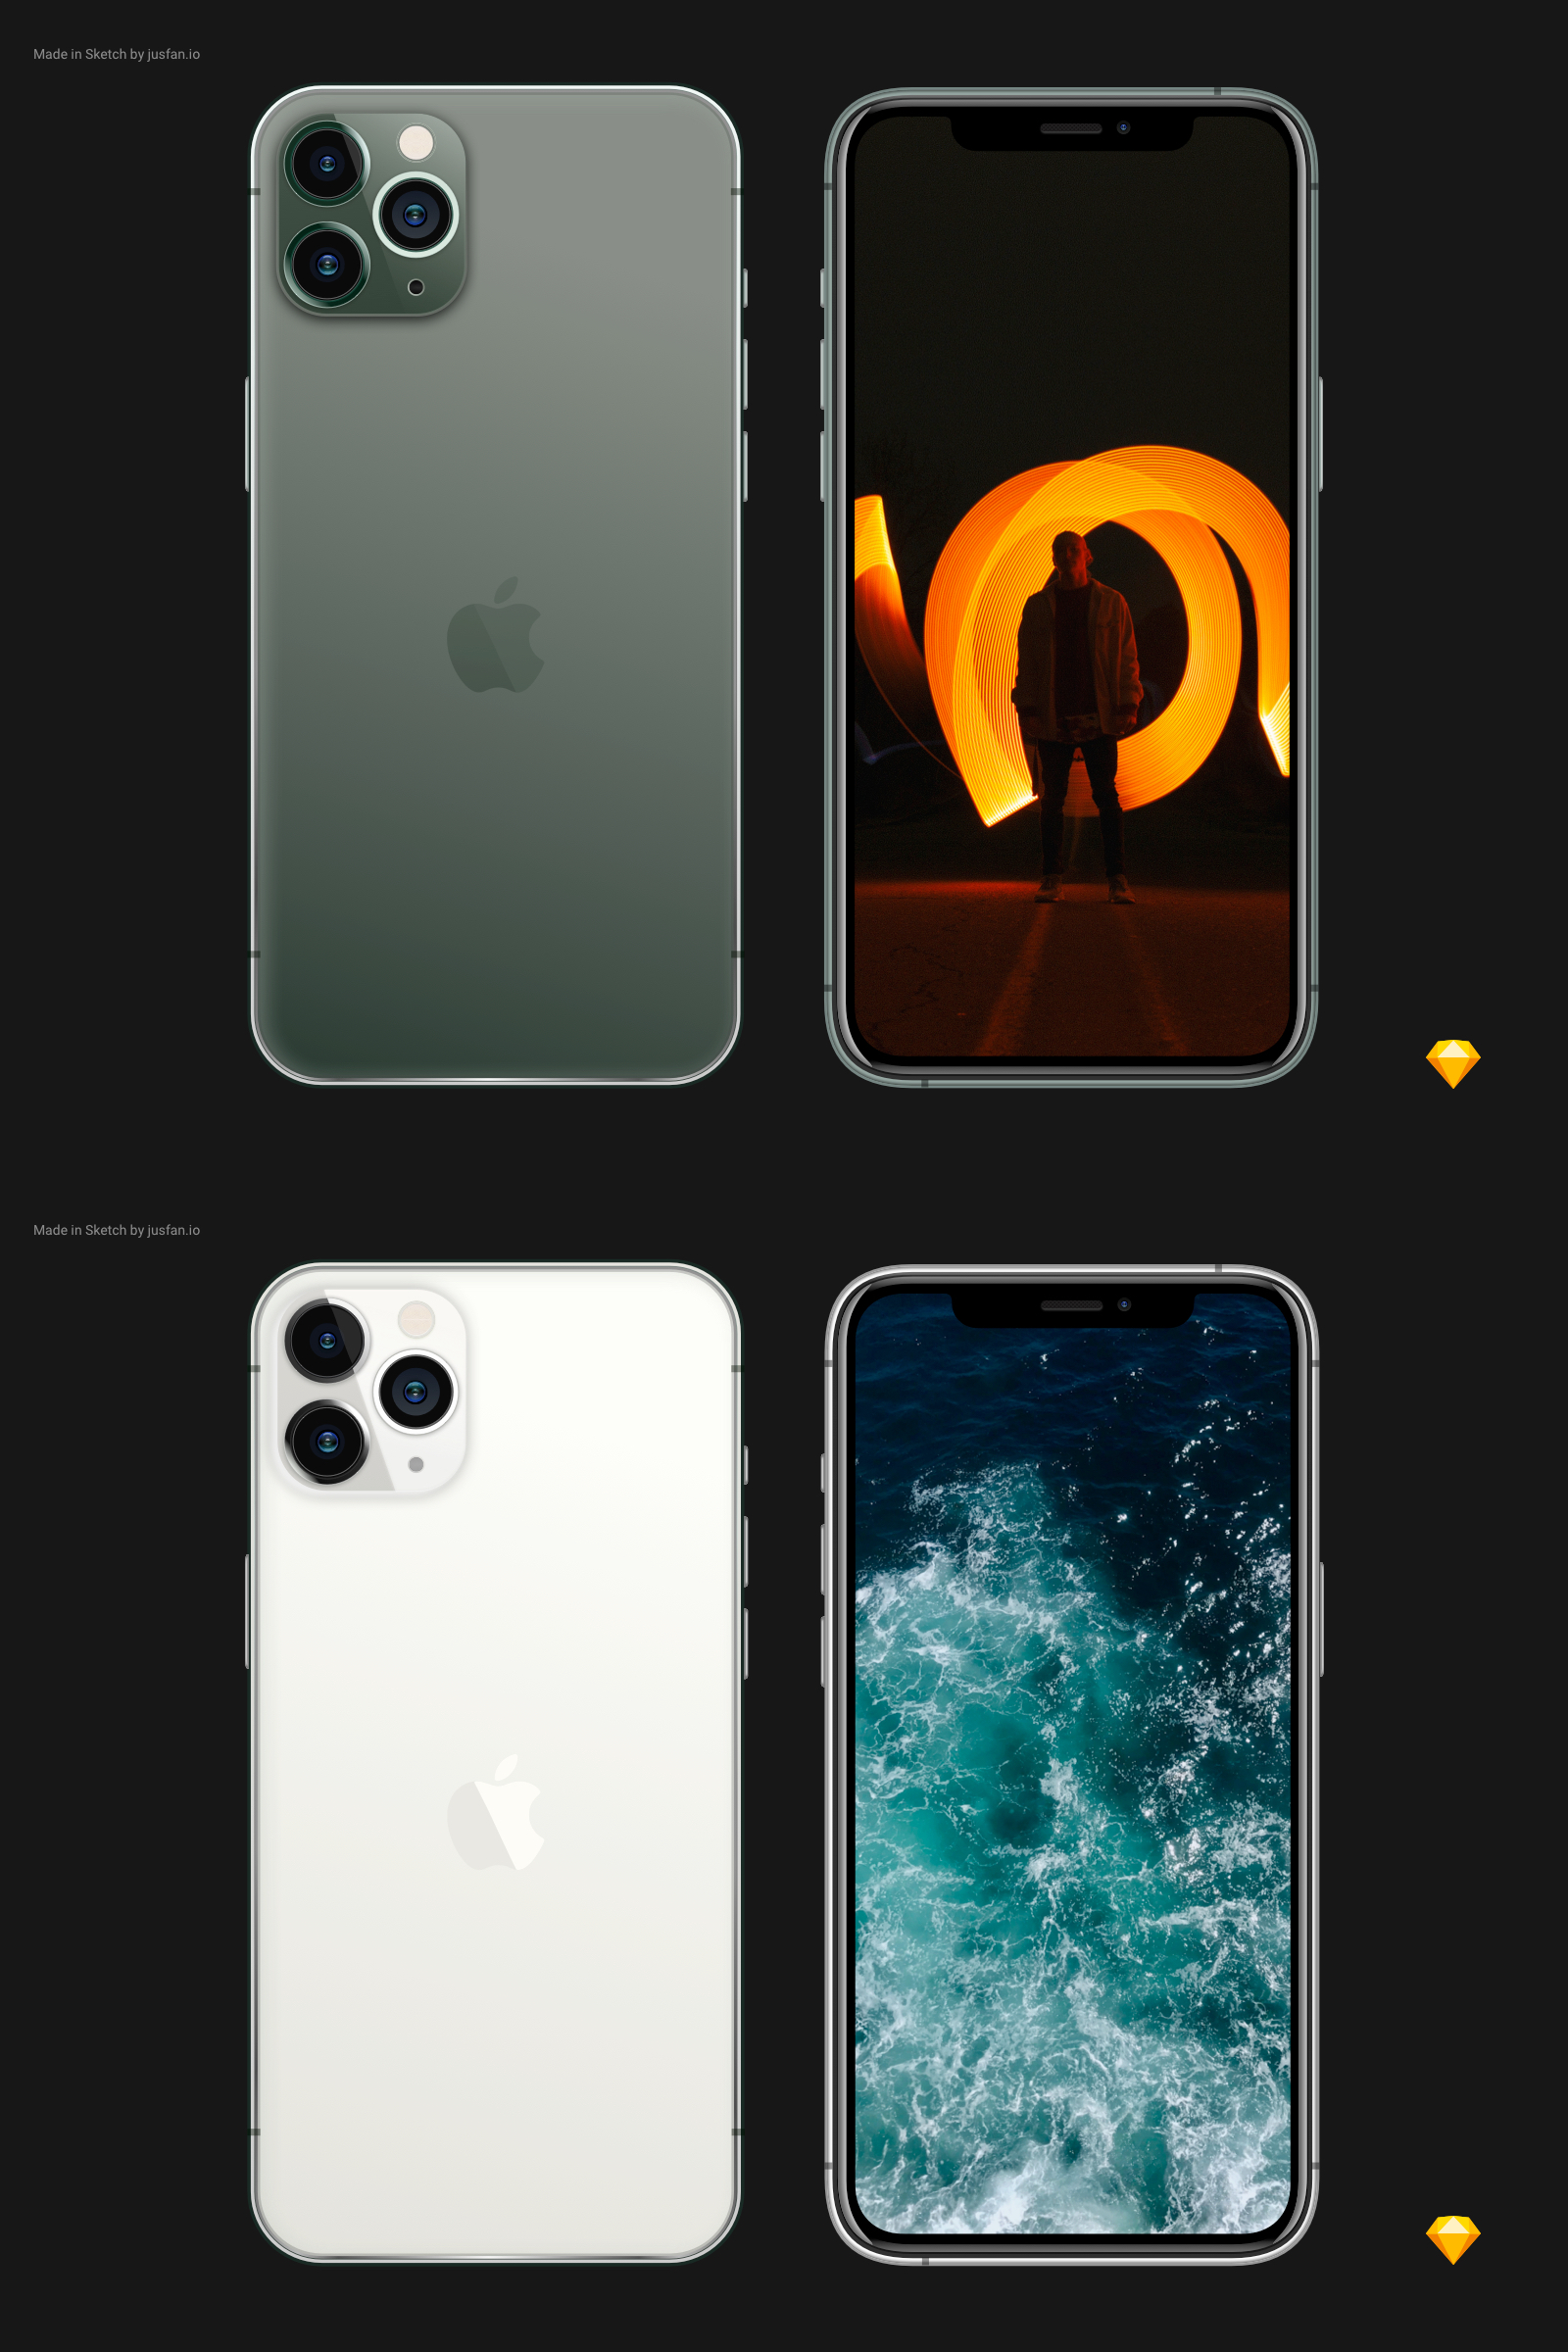 Free iPhone 11 Pro Mockup for Sketch - Feel free to use and modify for your needs.